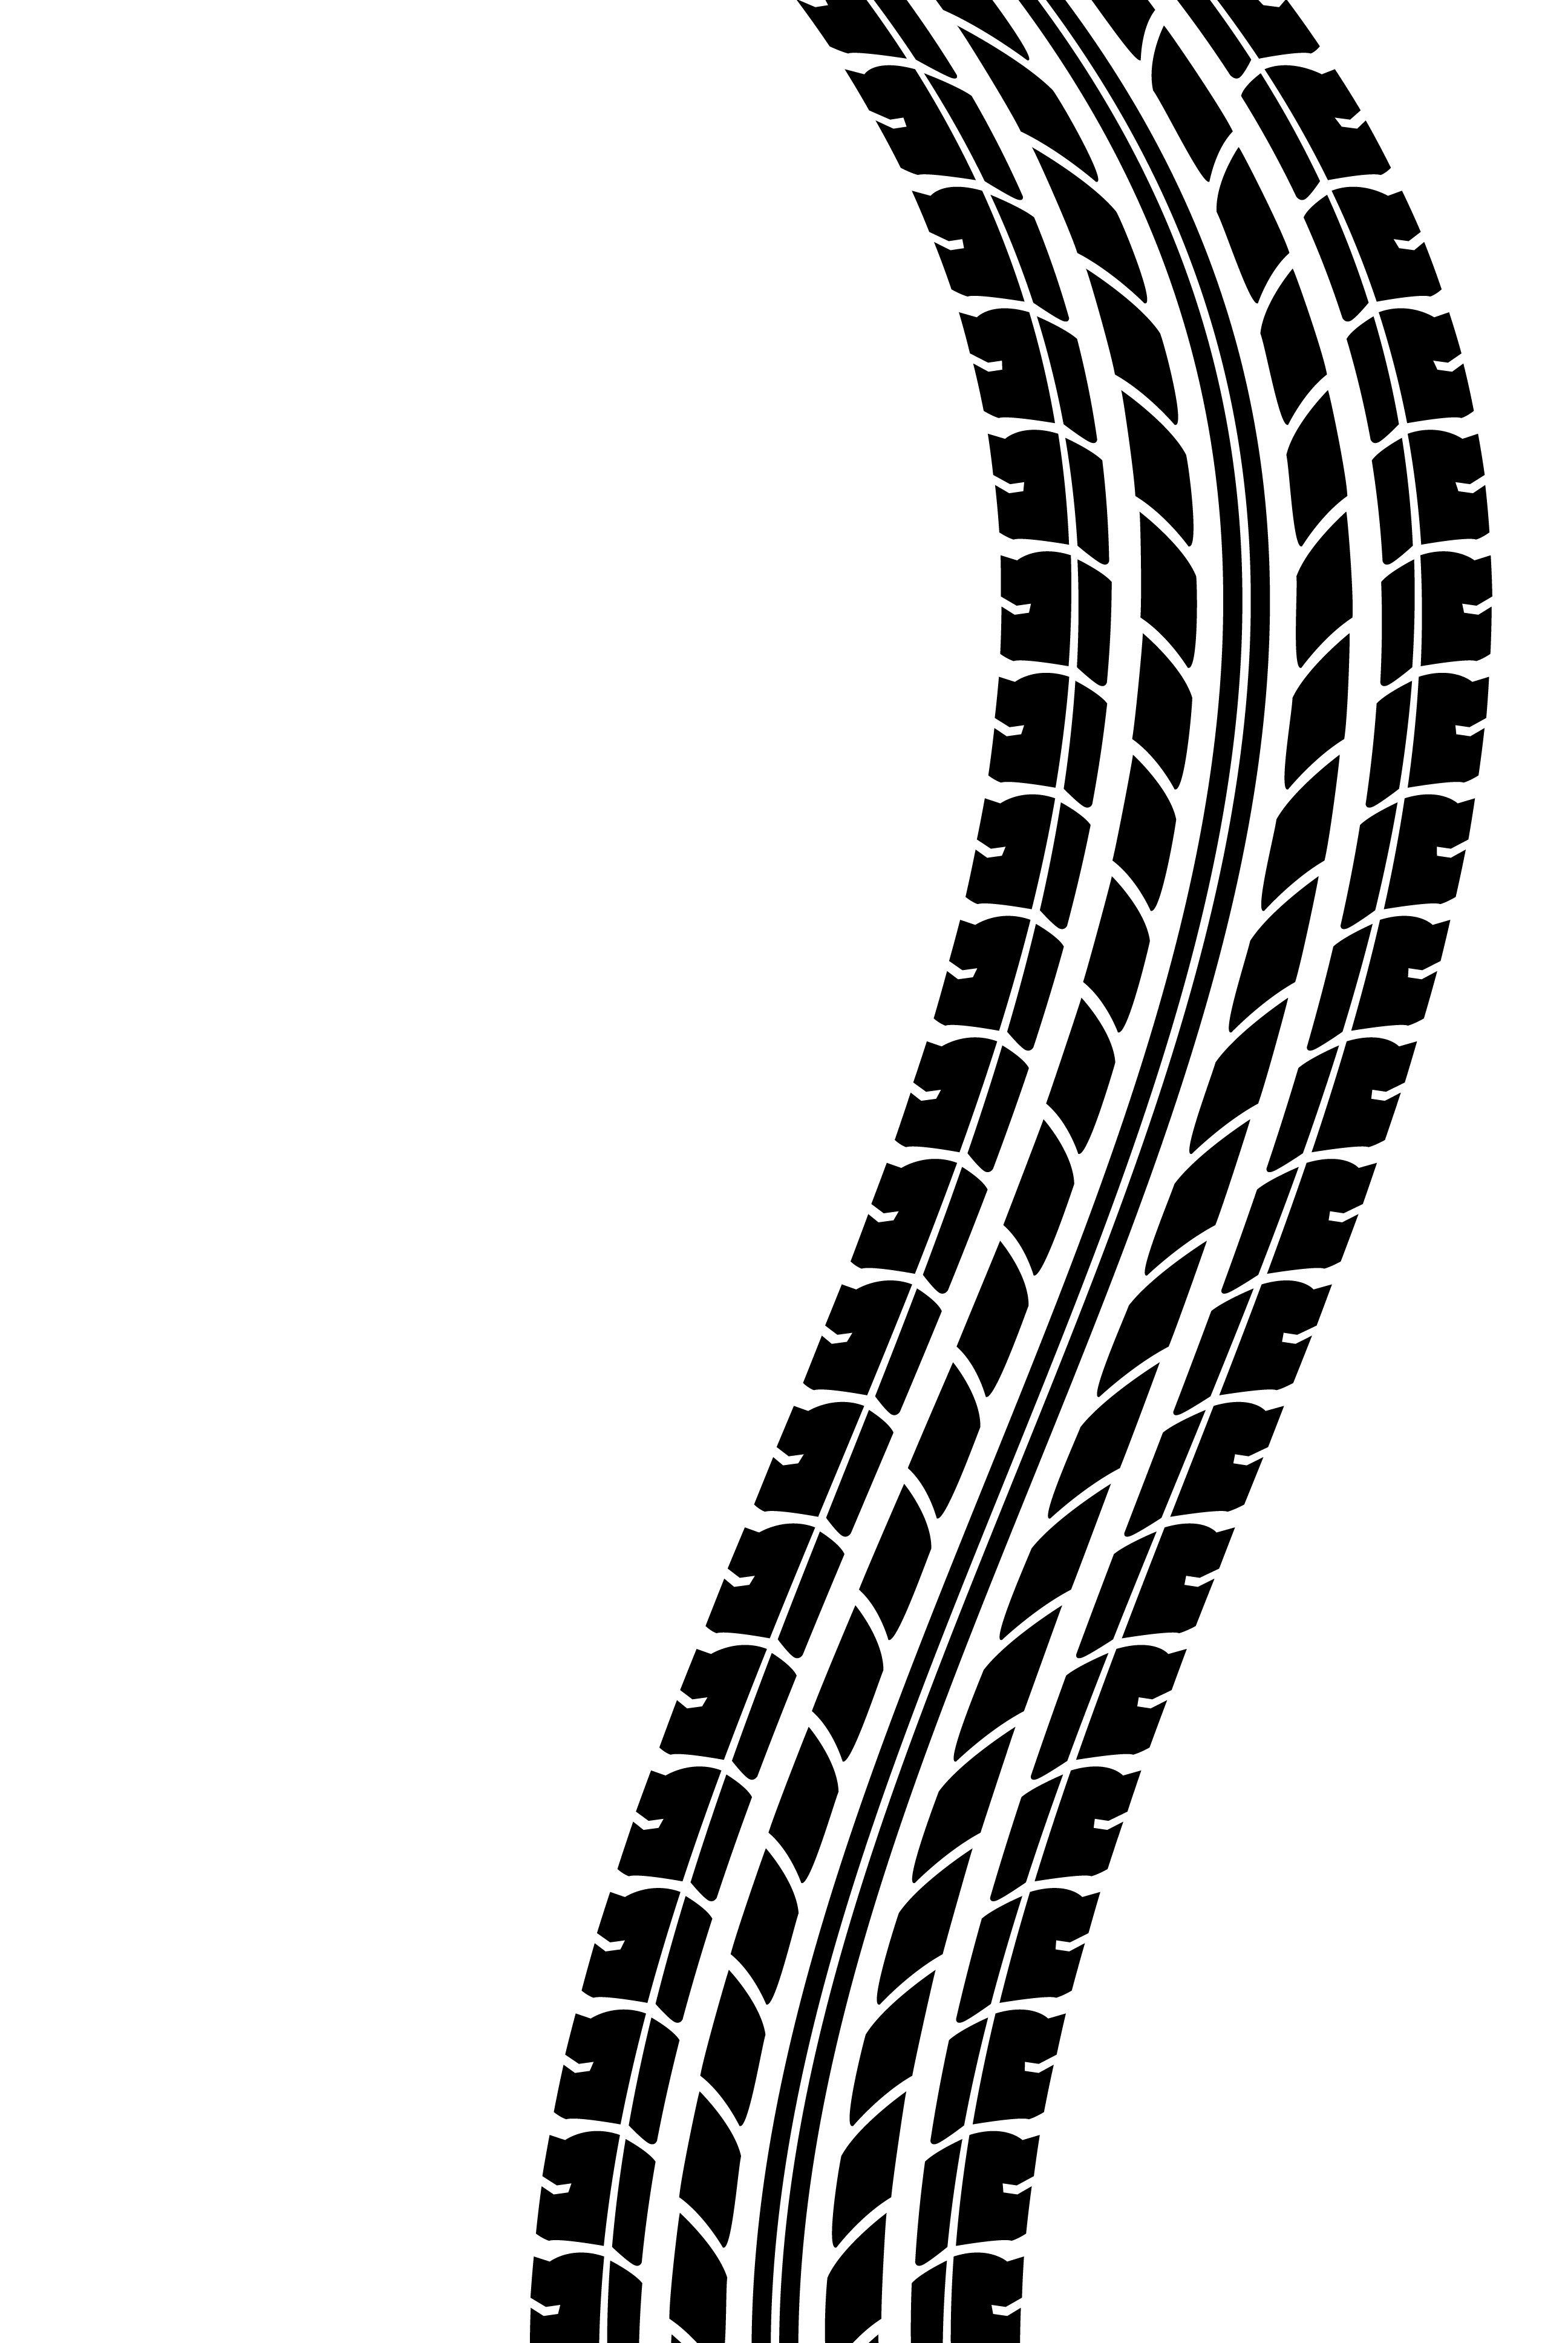 Tire track clipart vector free image freeuse stock Free Tire Tracks, Download Free Clip Art, Free Clip Art on ... image freeuse stock